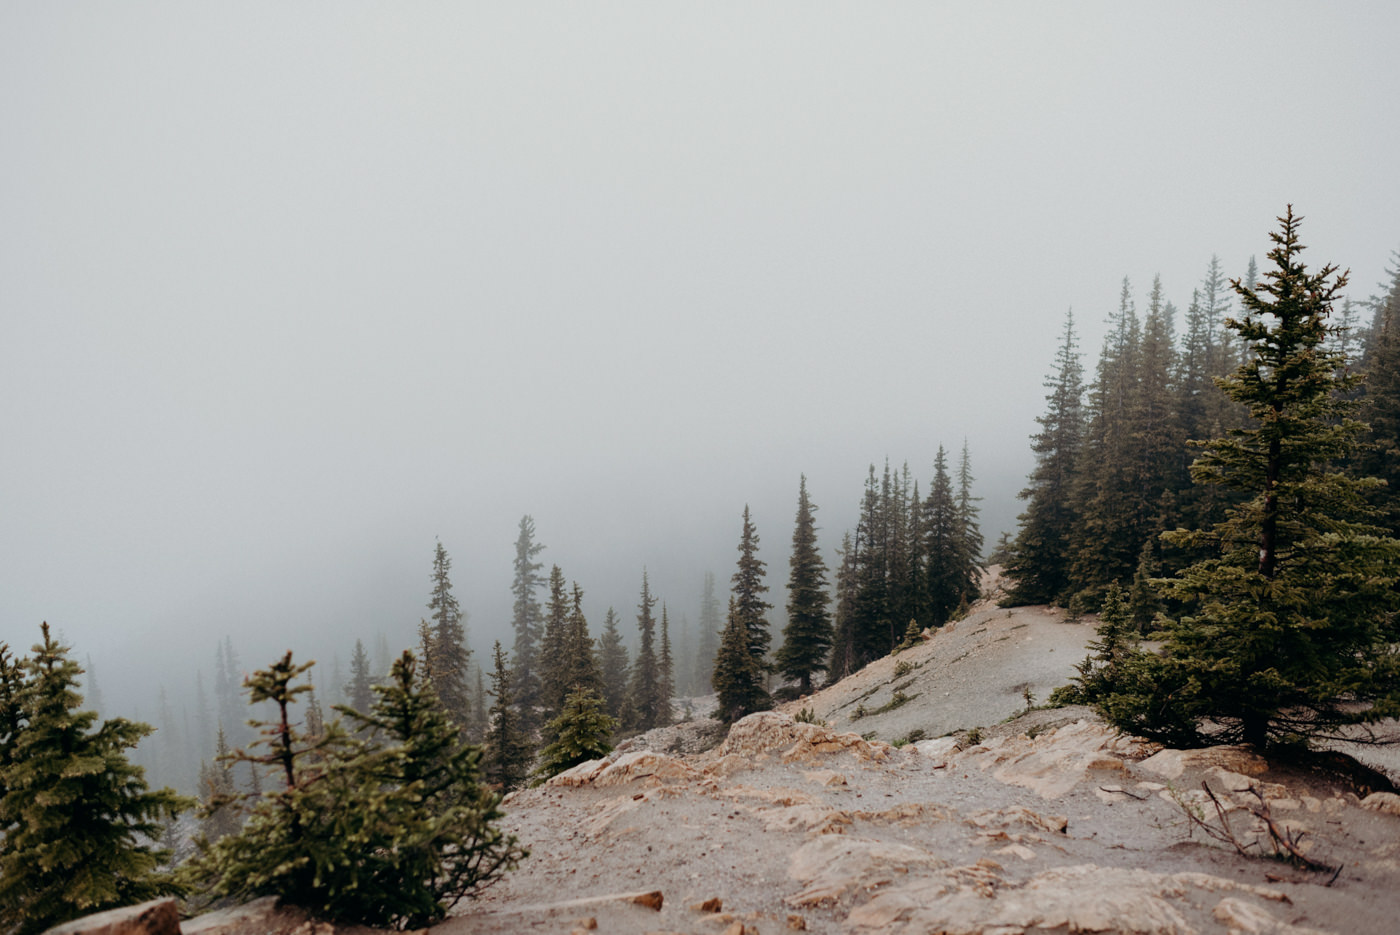 pine trees in fog on a mountain